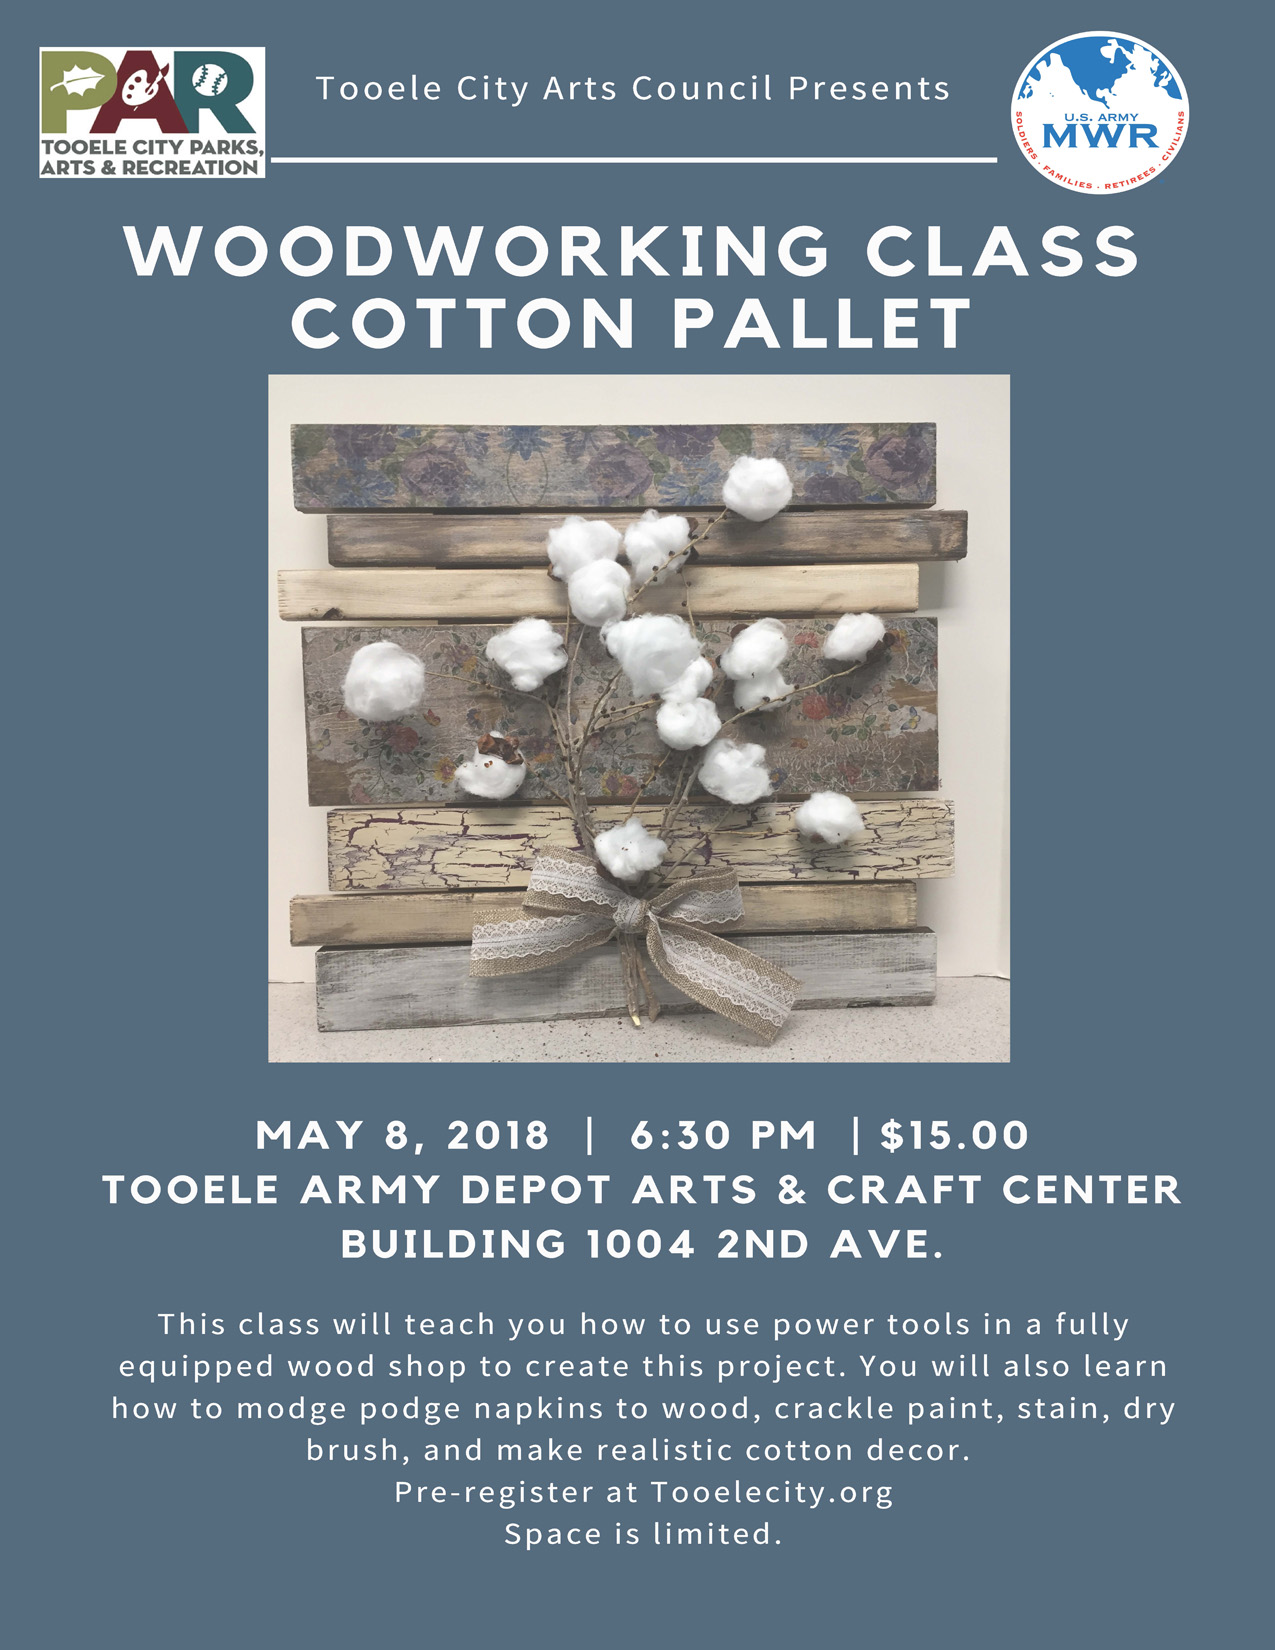 Woodworking Class May 8, 2018